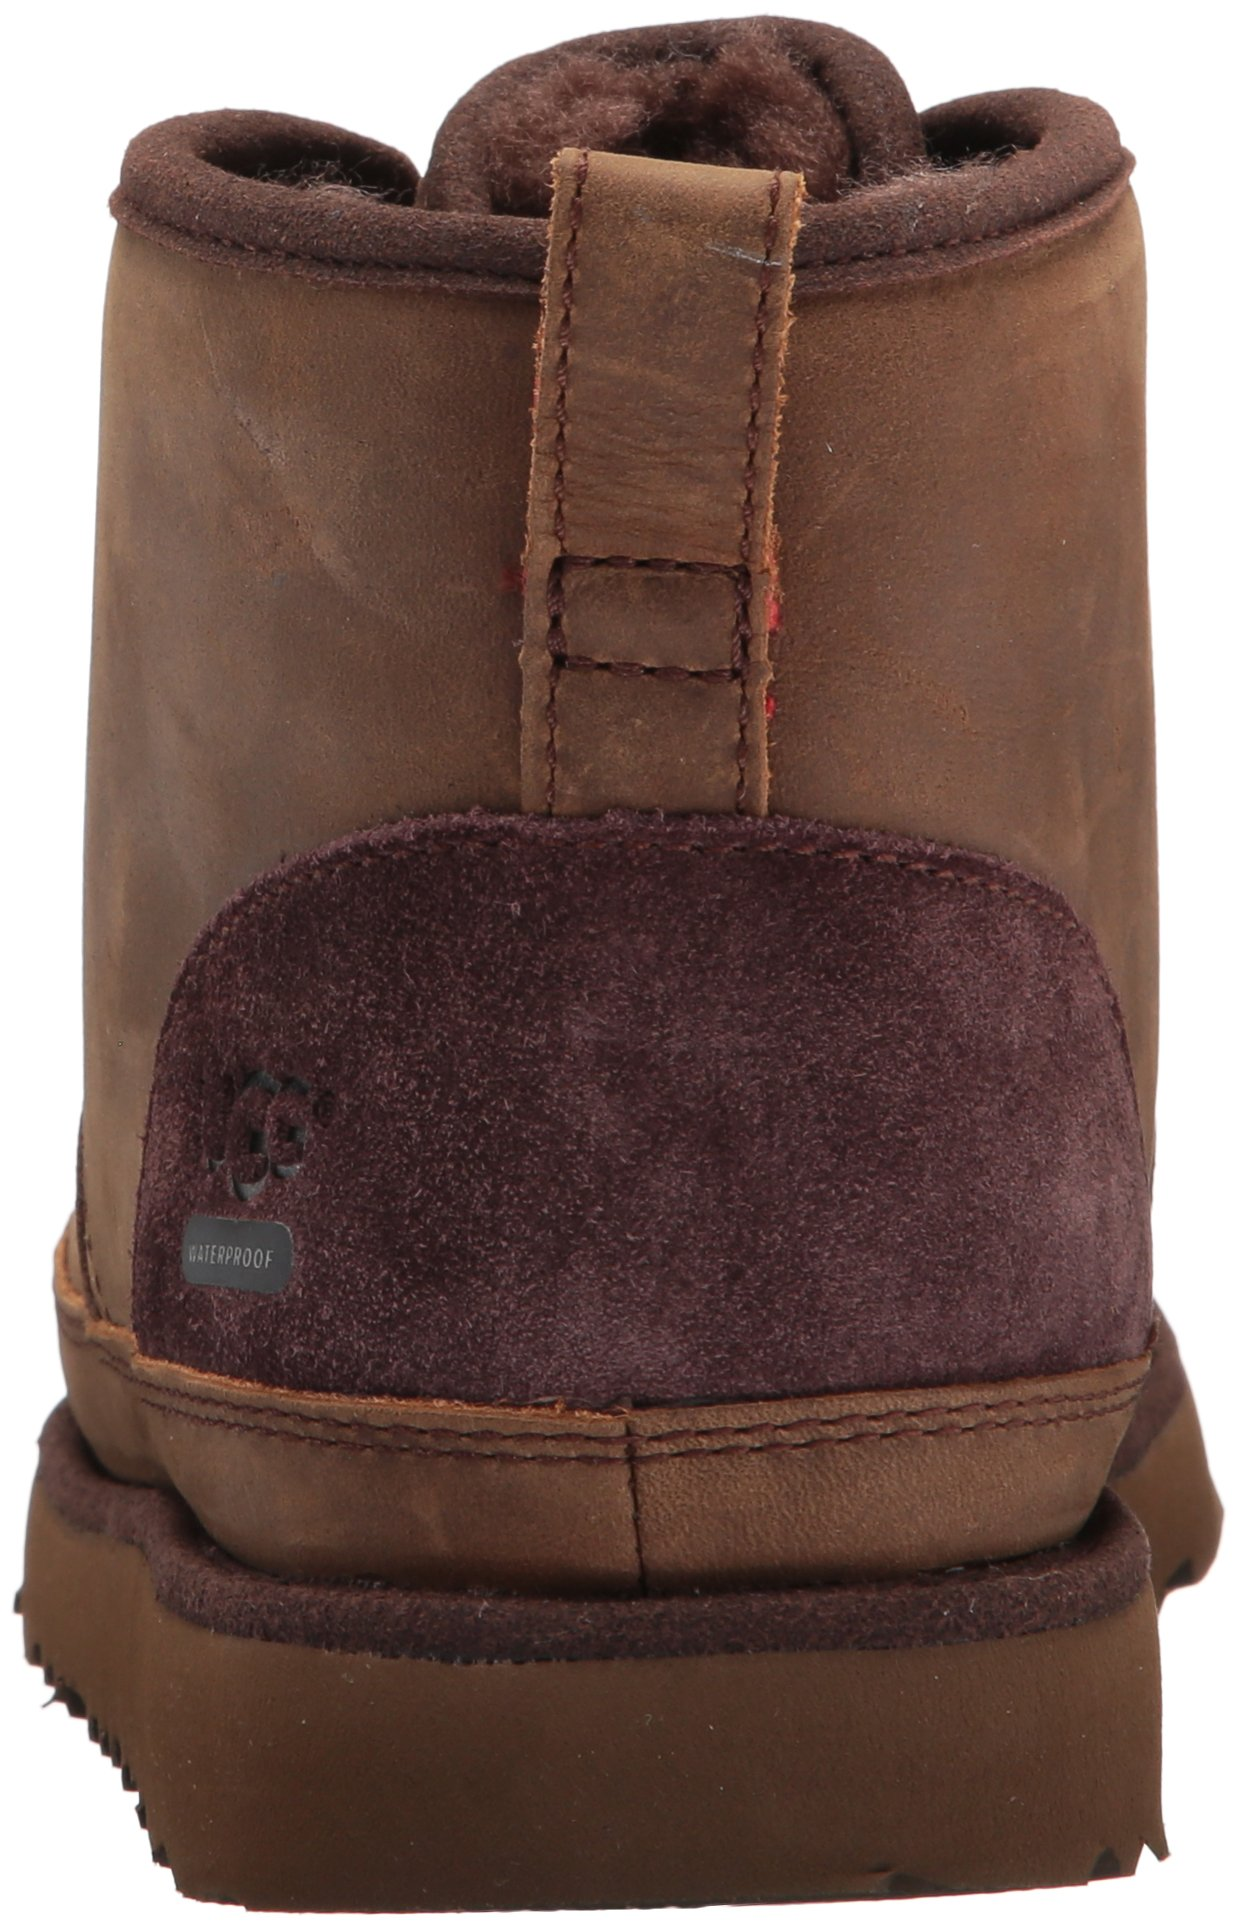 UGG Kids K Neumel II WP Pull-on Boot, Grizzly, 13 M US Little Kid by UGG (Image #2)